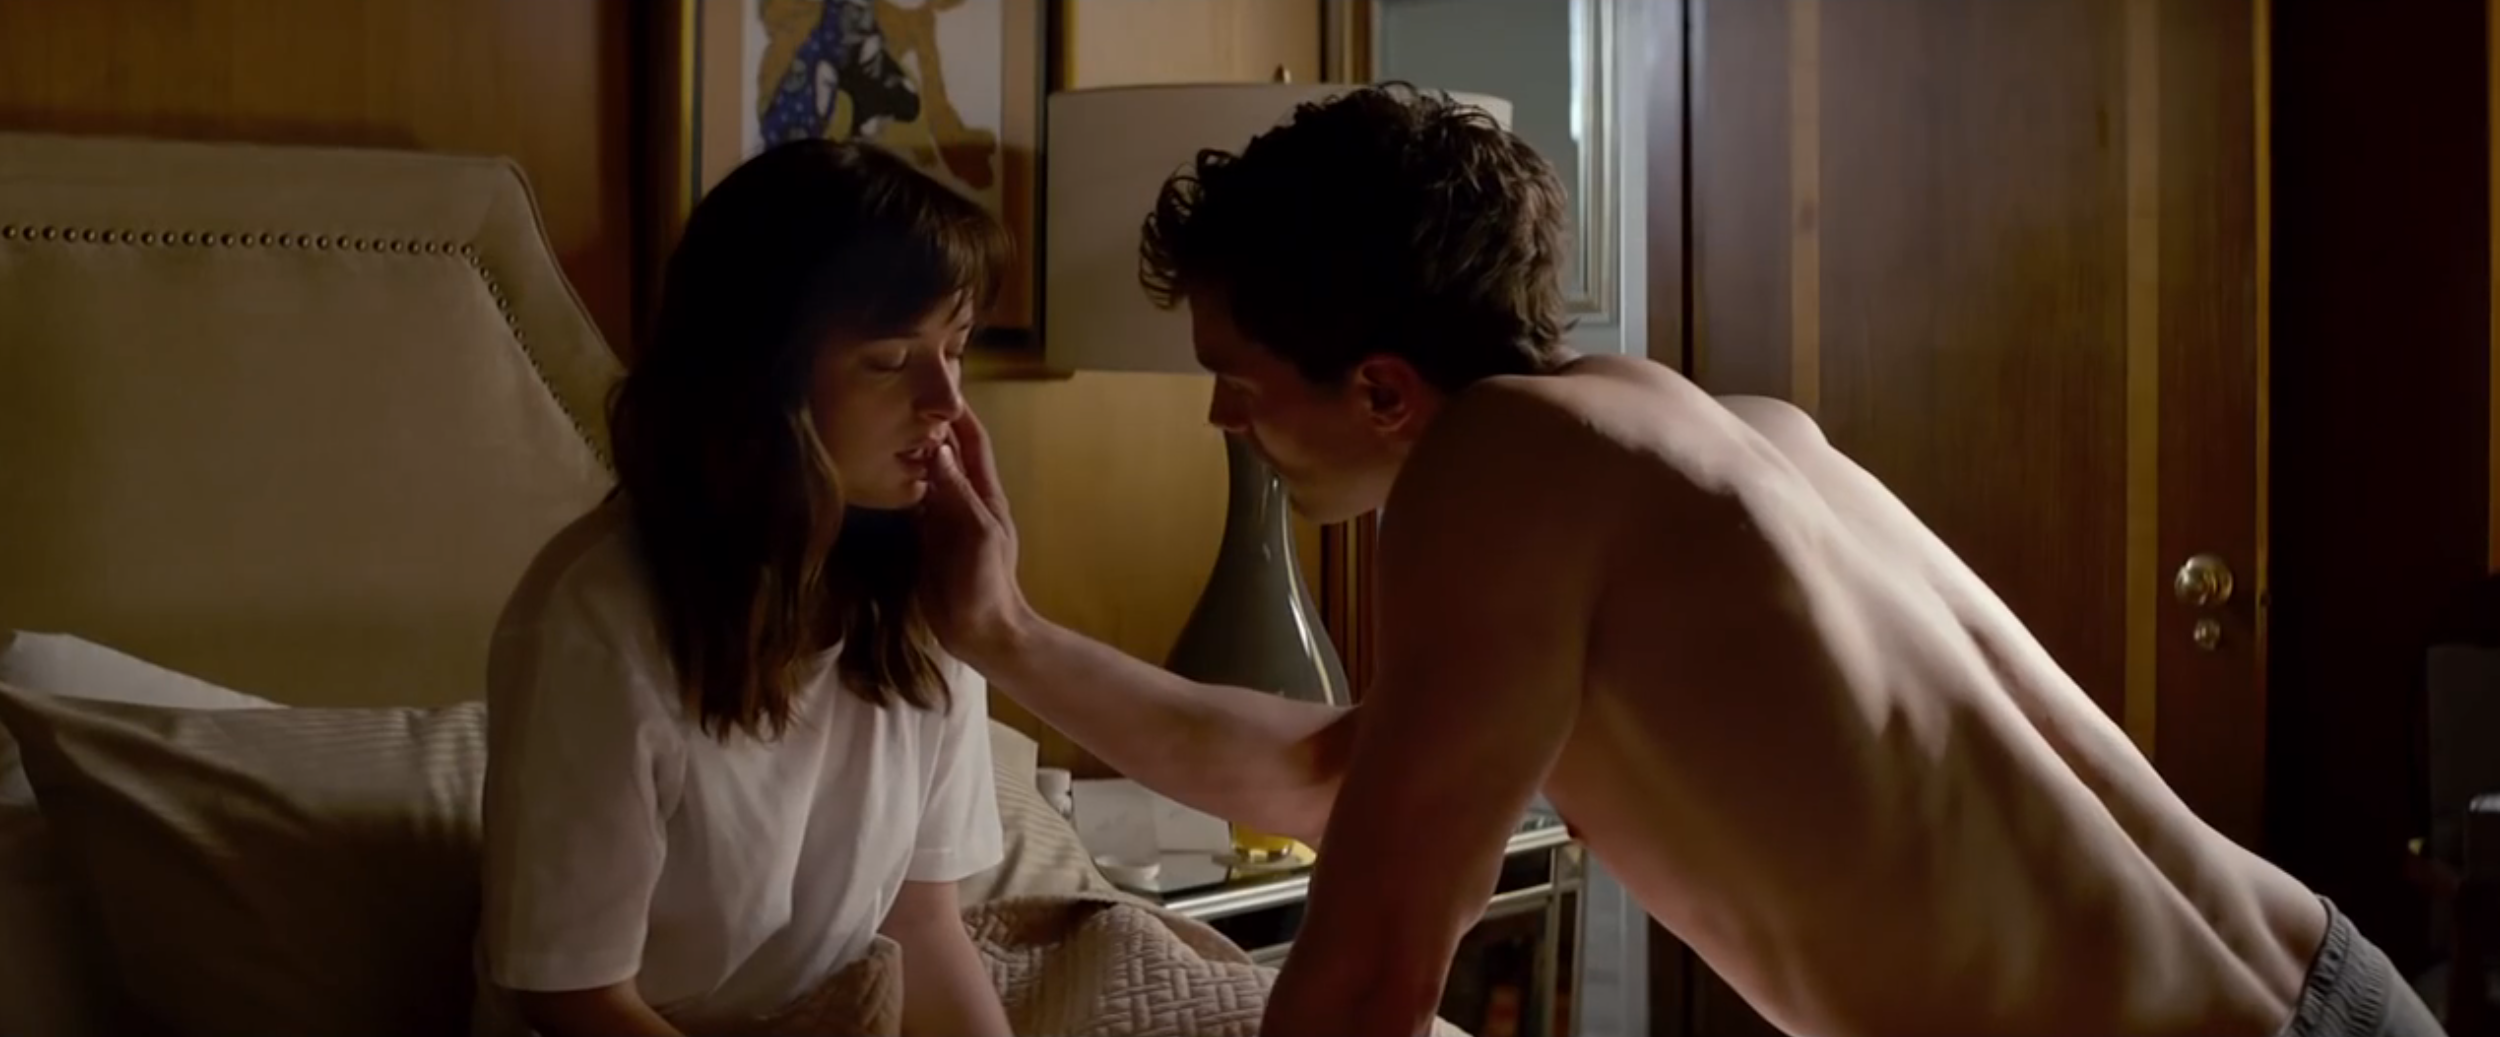 Fifty Shades Of Grey Scene Watch Scene From Fifty Shades Of Gray